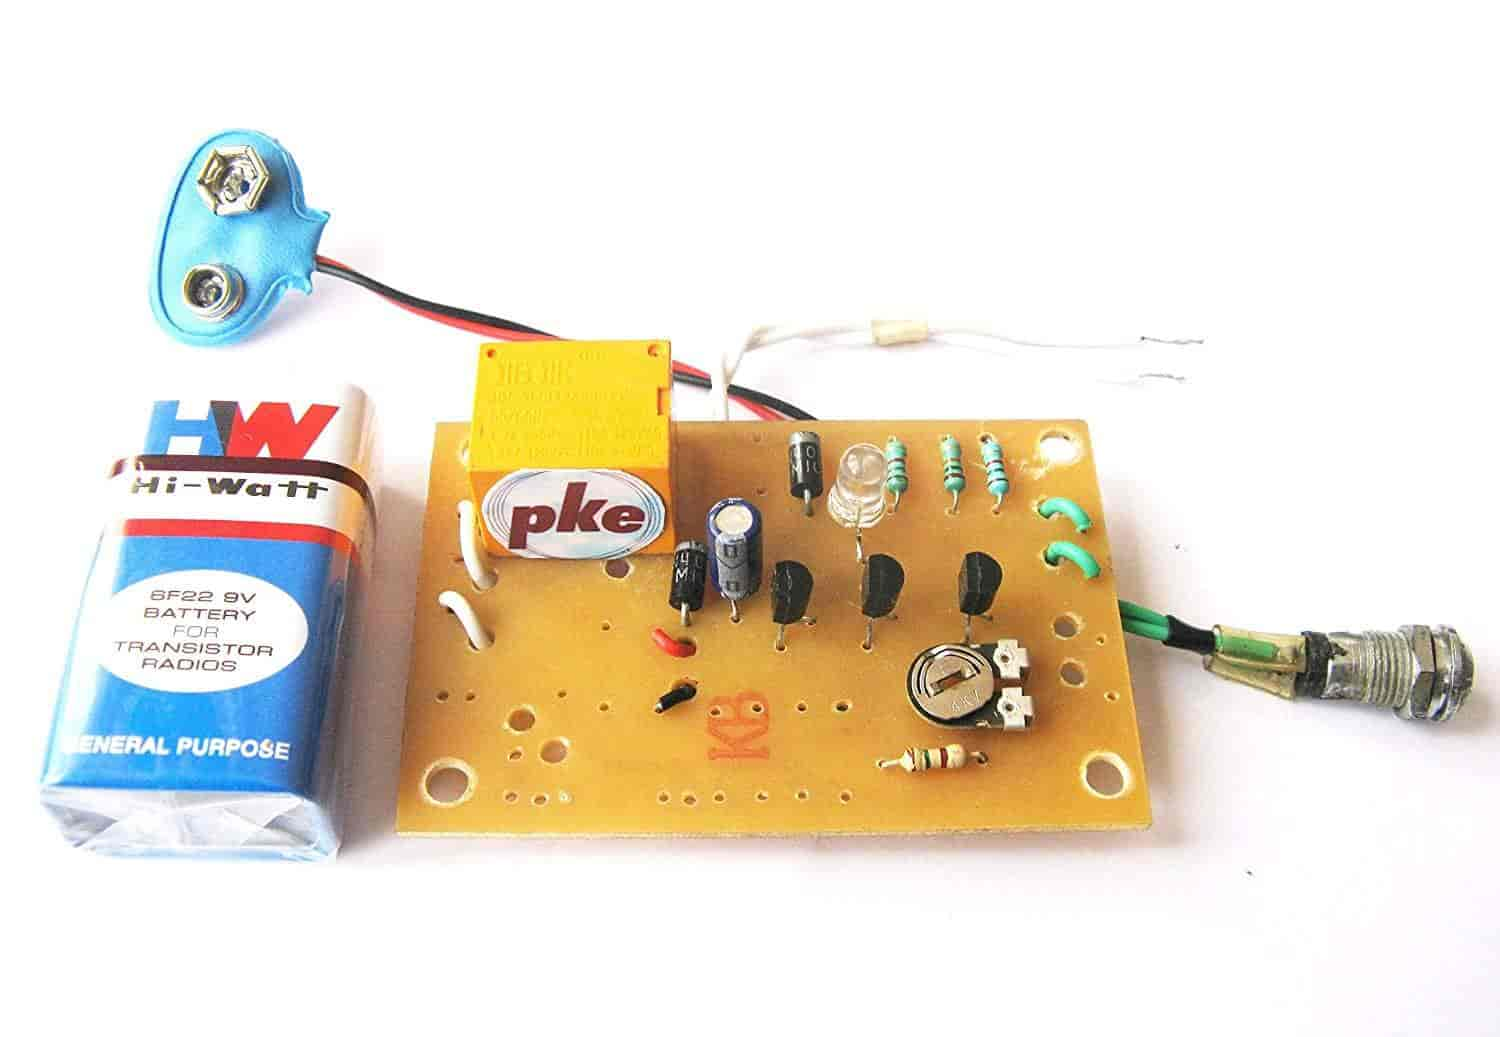 Buy Pke Light Switch Ldr Circuit Project Features Price Reviews Working Model